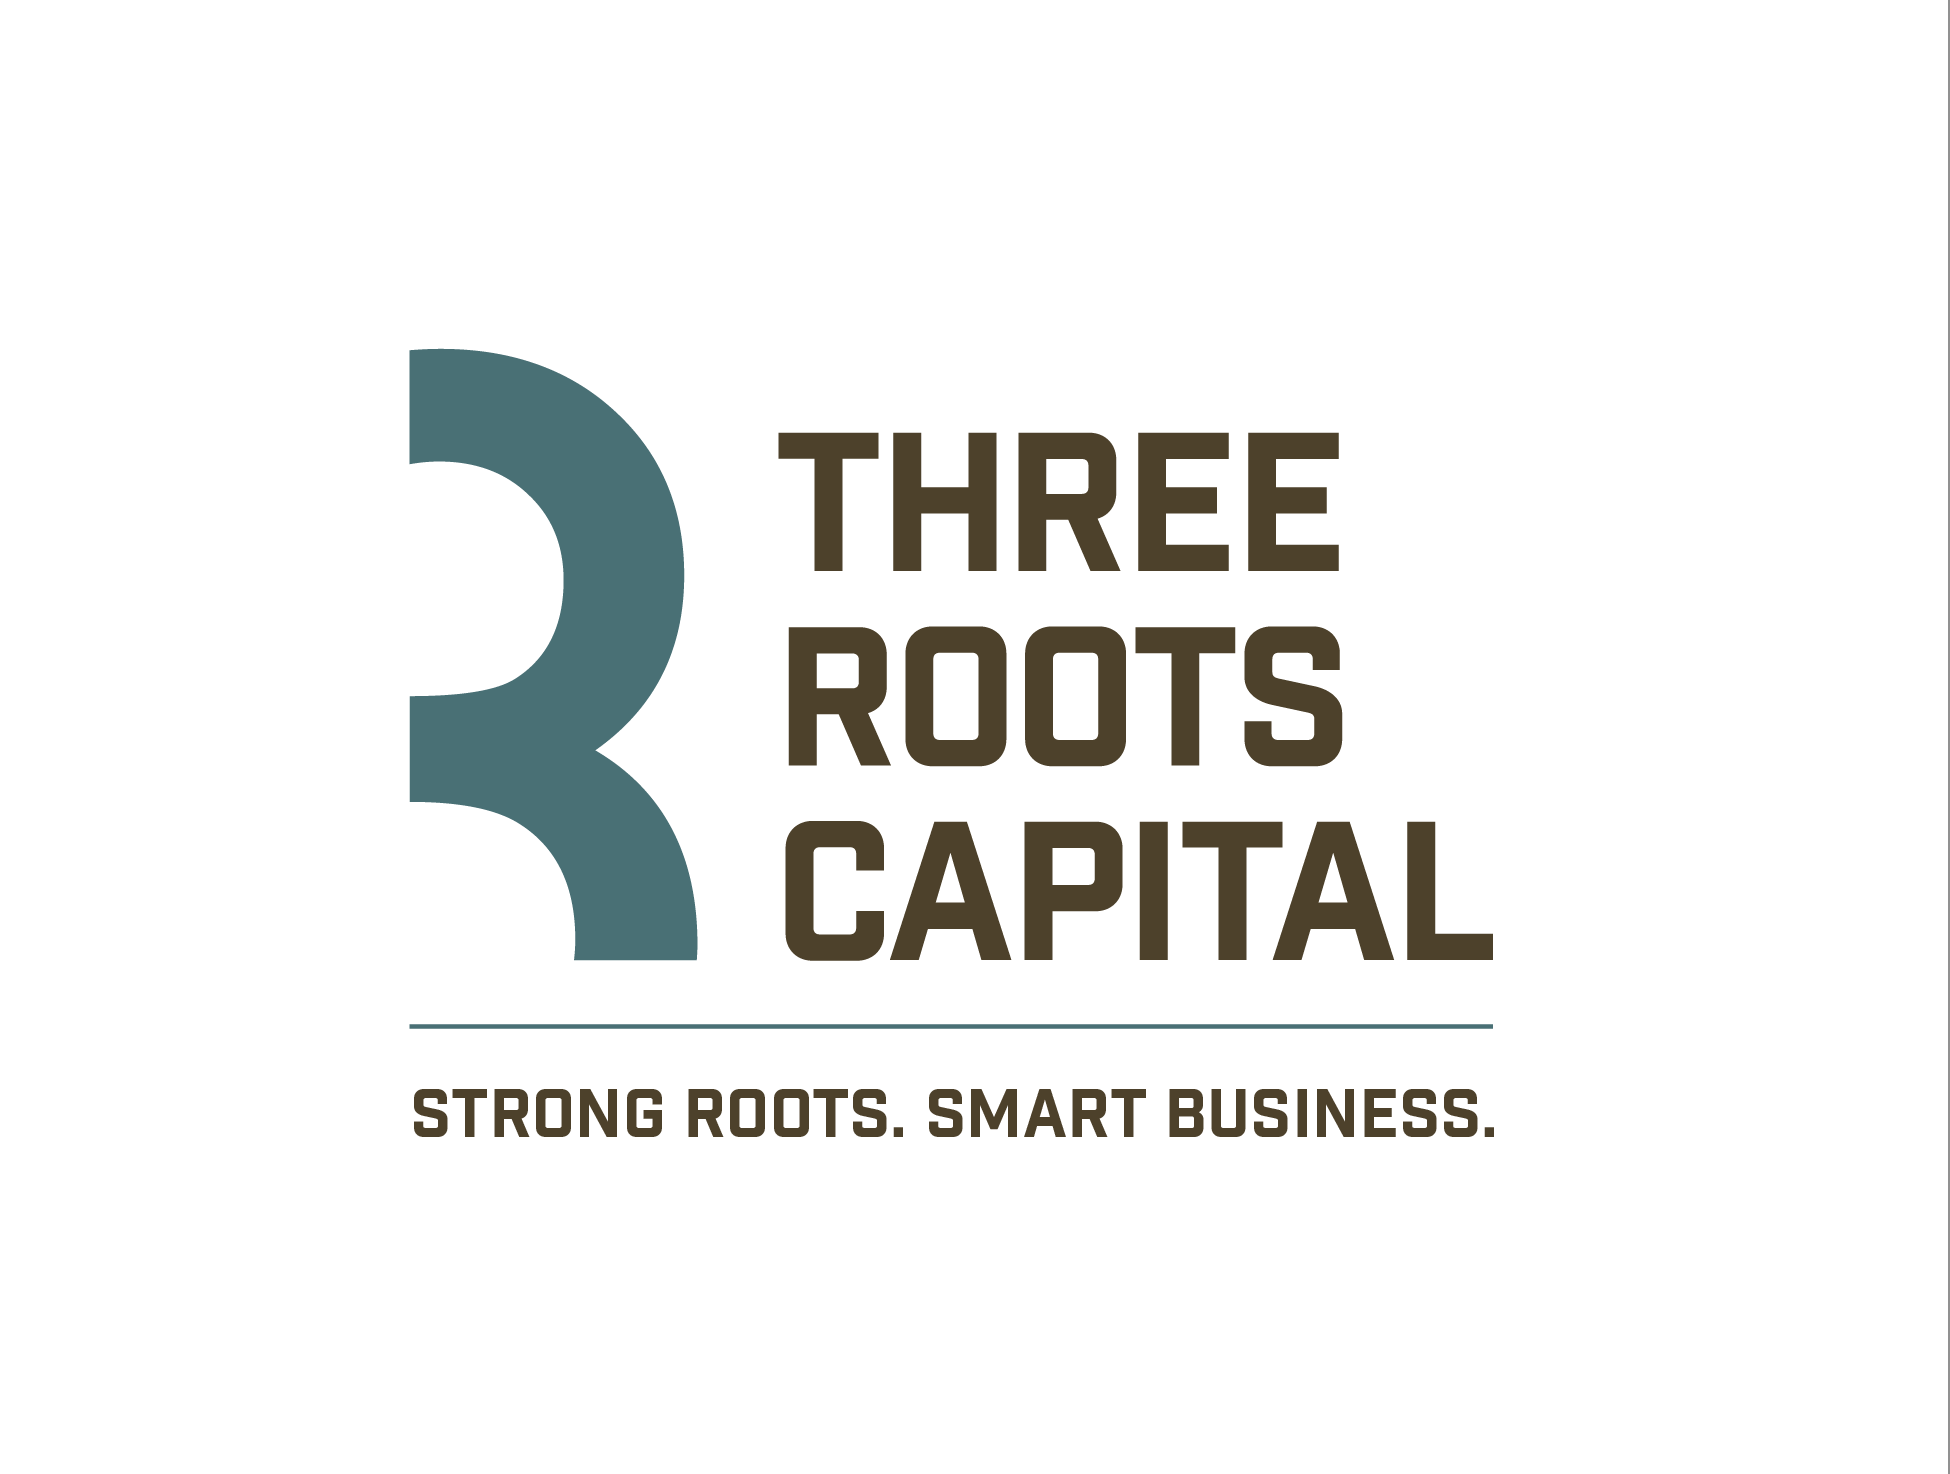 3 Roots logo